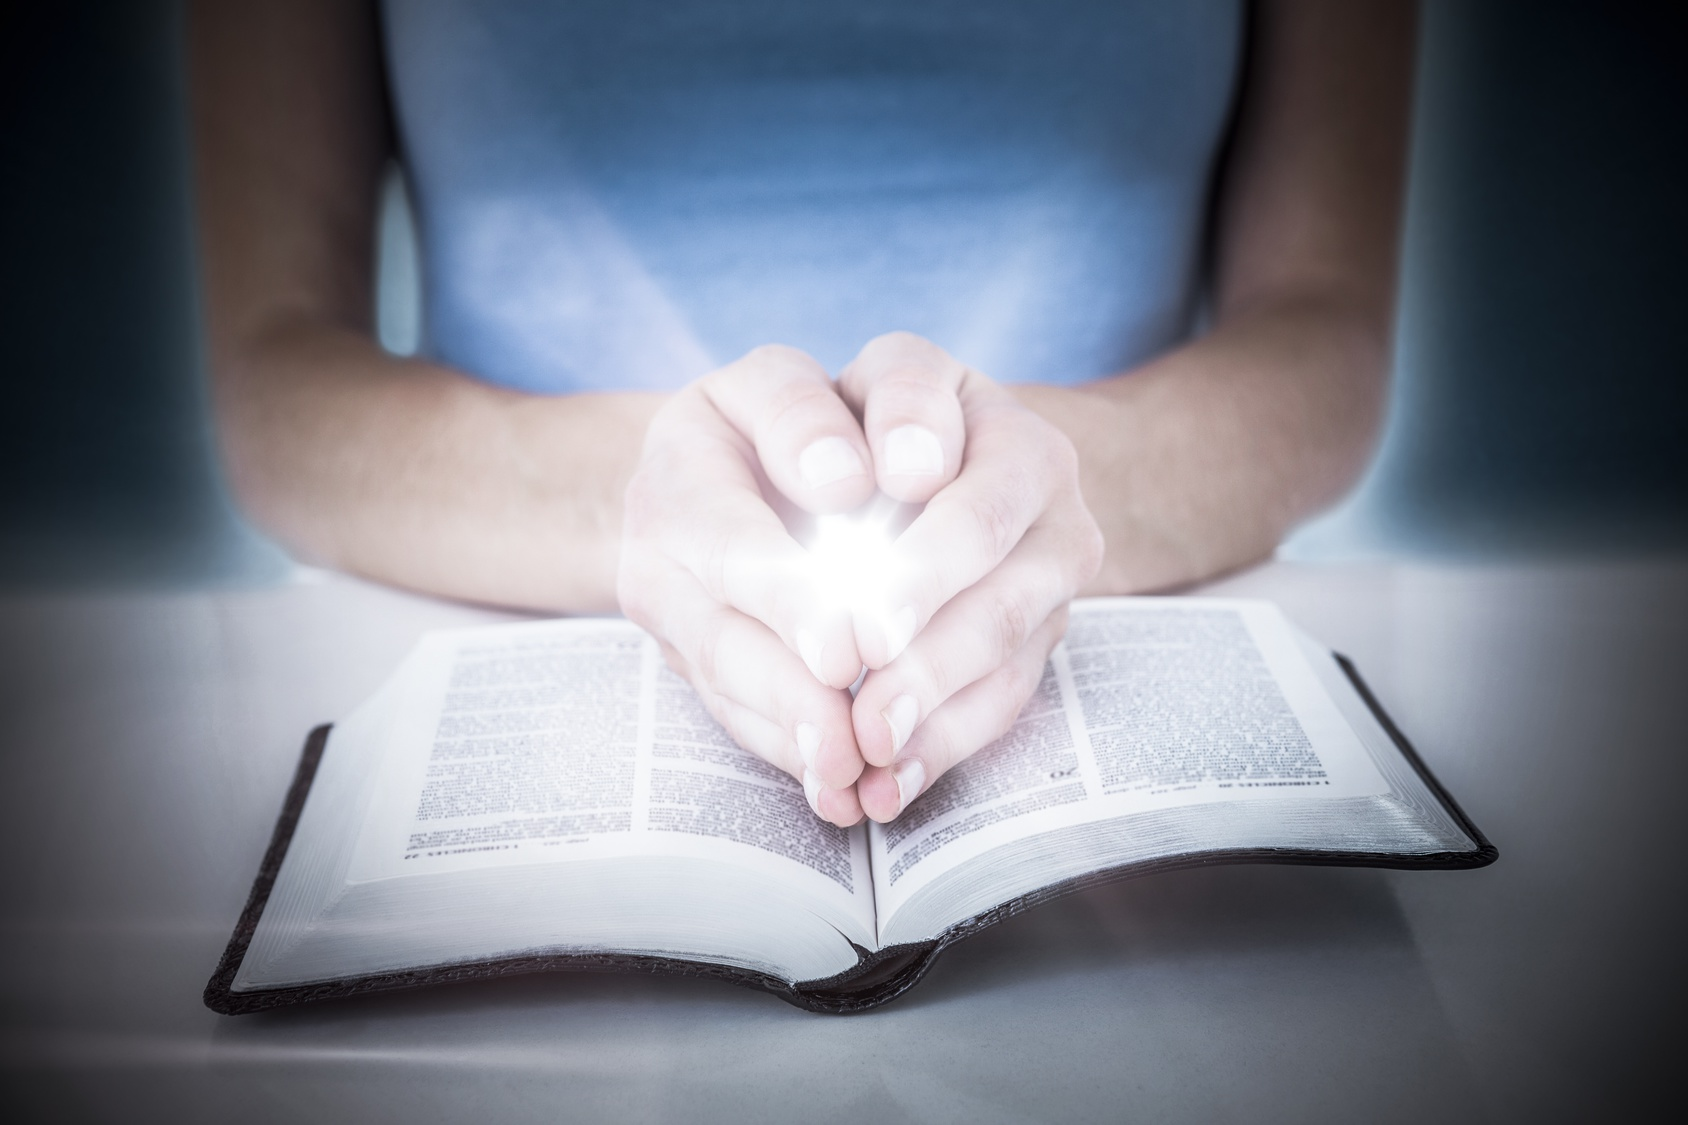 Composite image of woman praying while reading bible